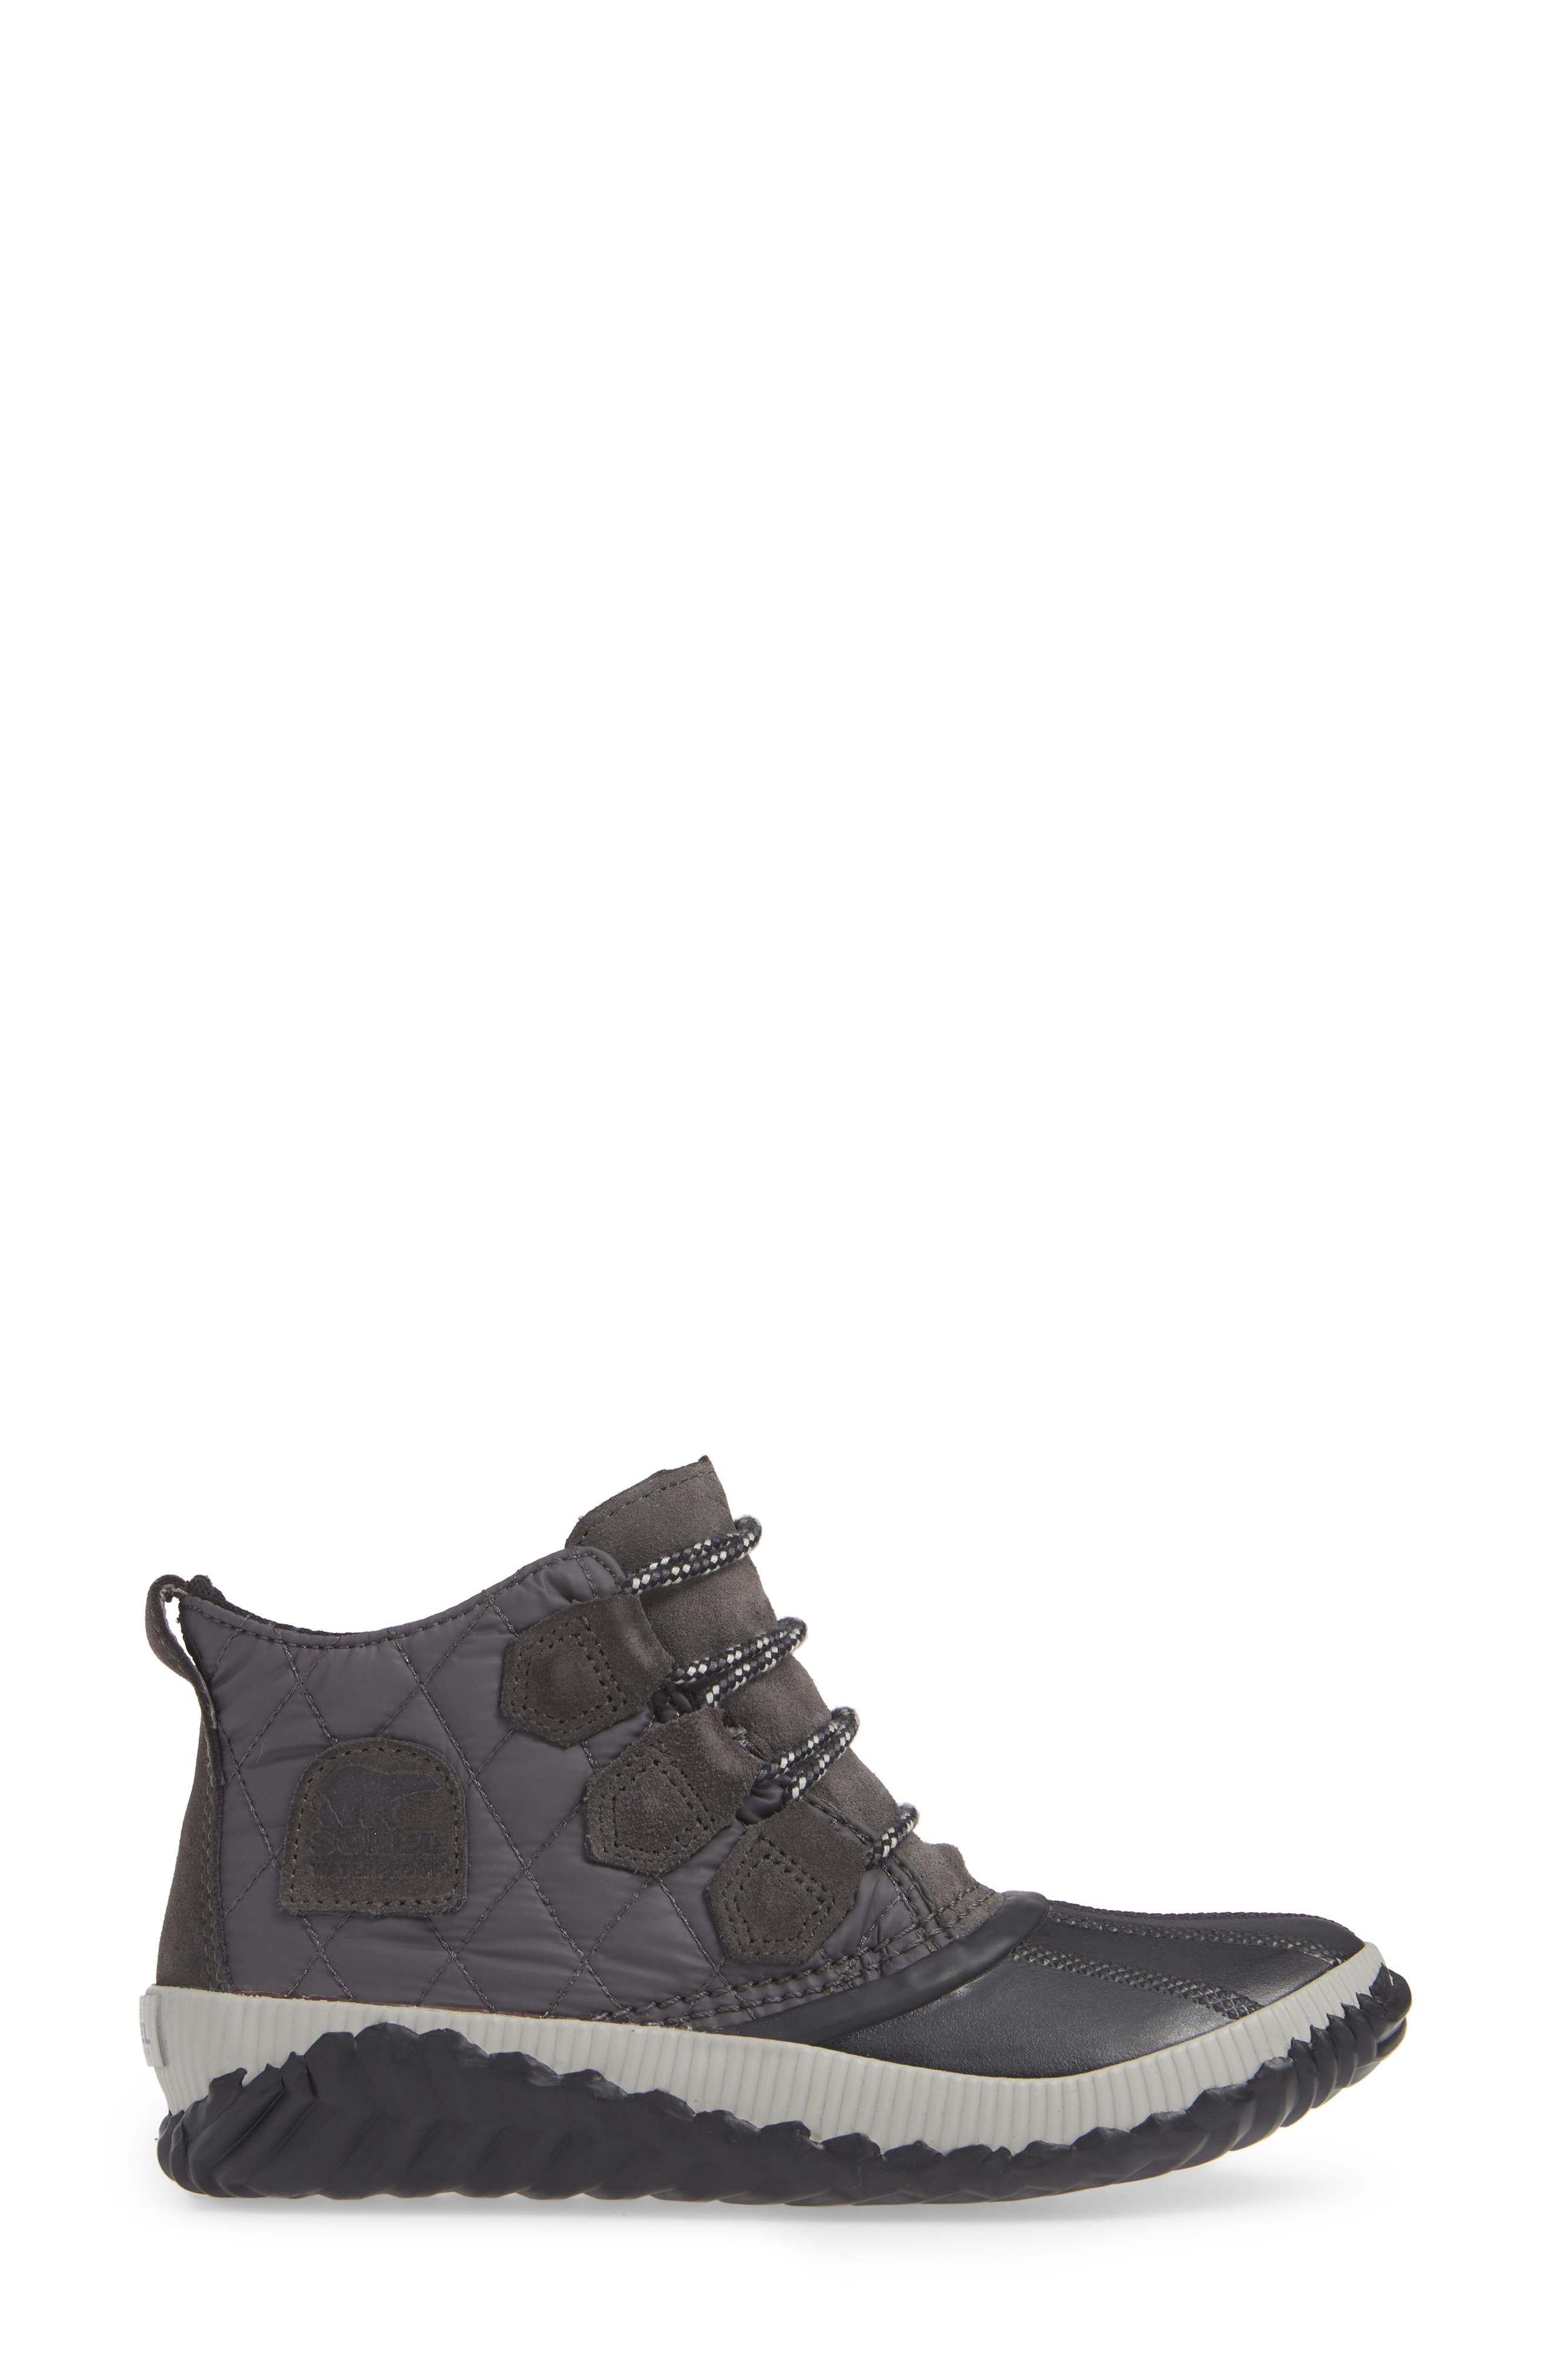 Out N About Plus Camp Waterproof Bootie,                             Alternate thumbnail 3, color,                             SLATE GREY/ BLACK